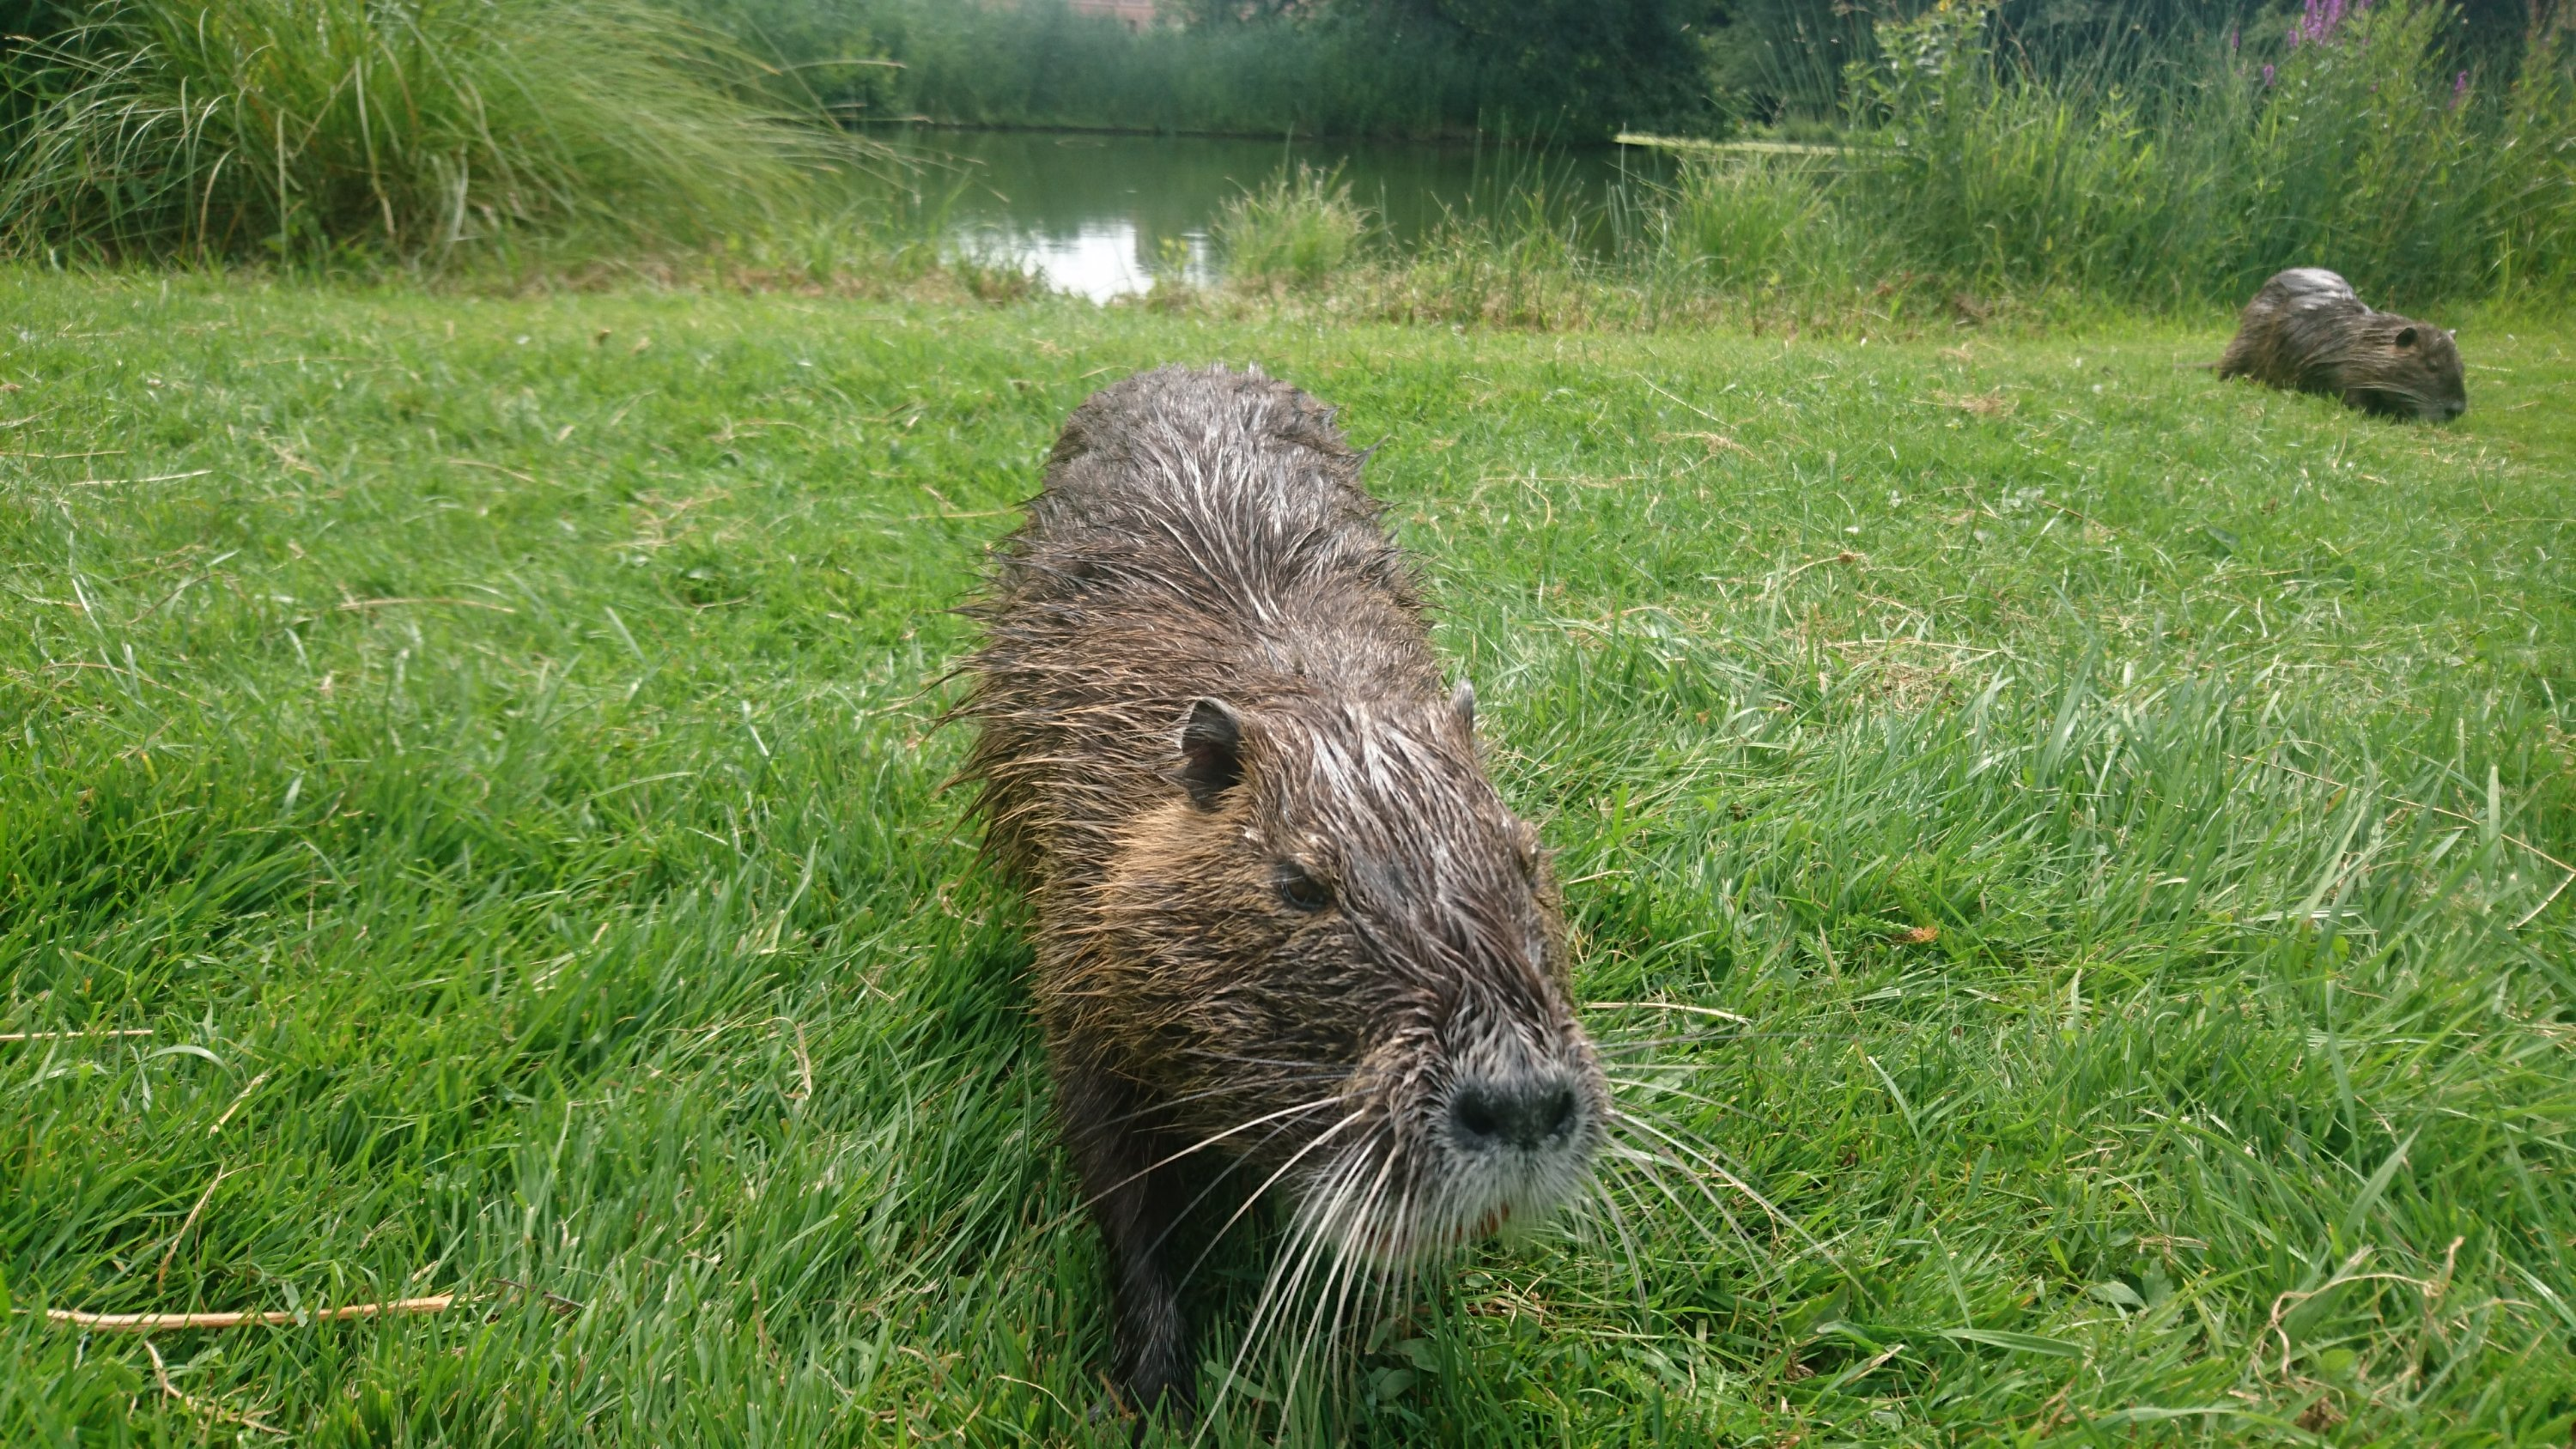 I MADE FRIENDS WITH THE NUTRIA!